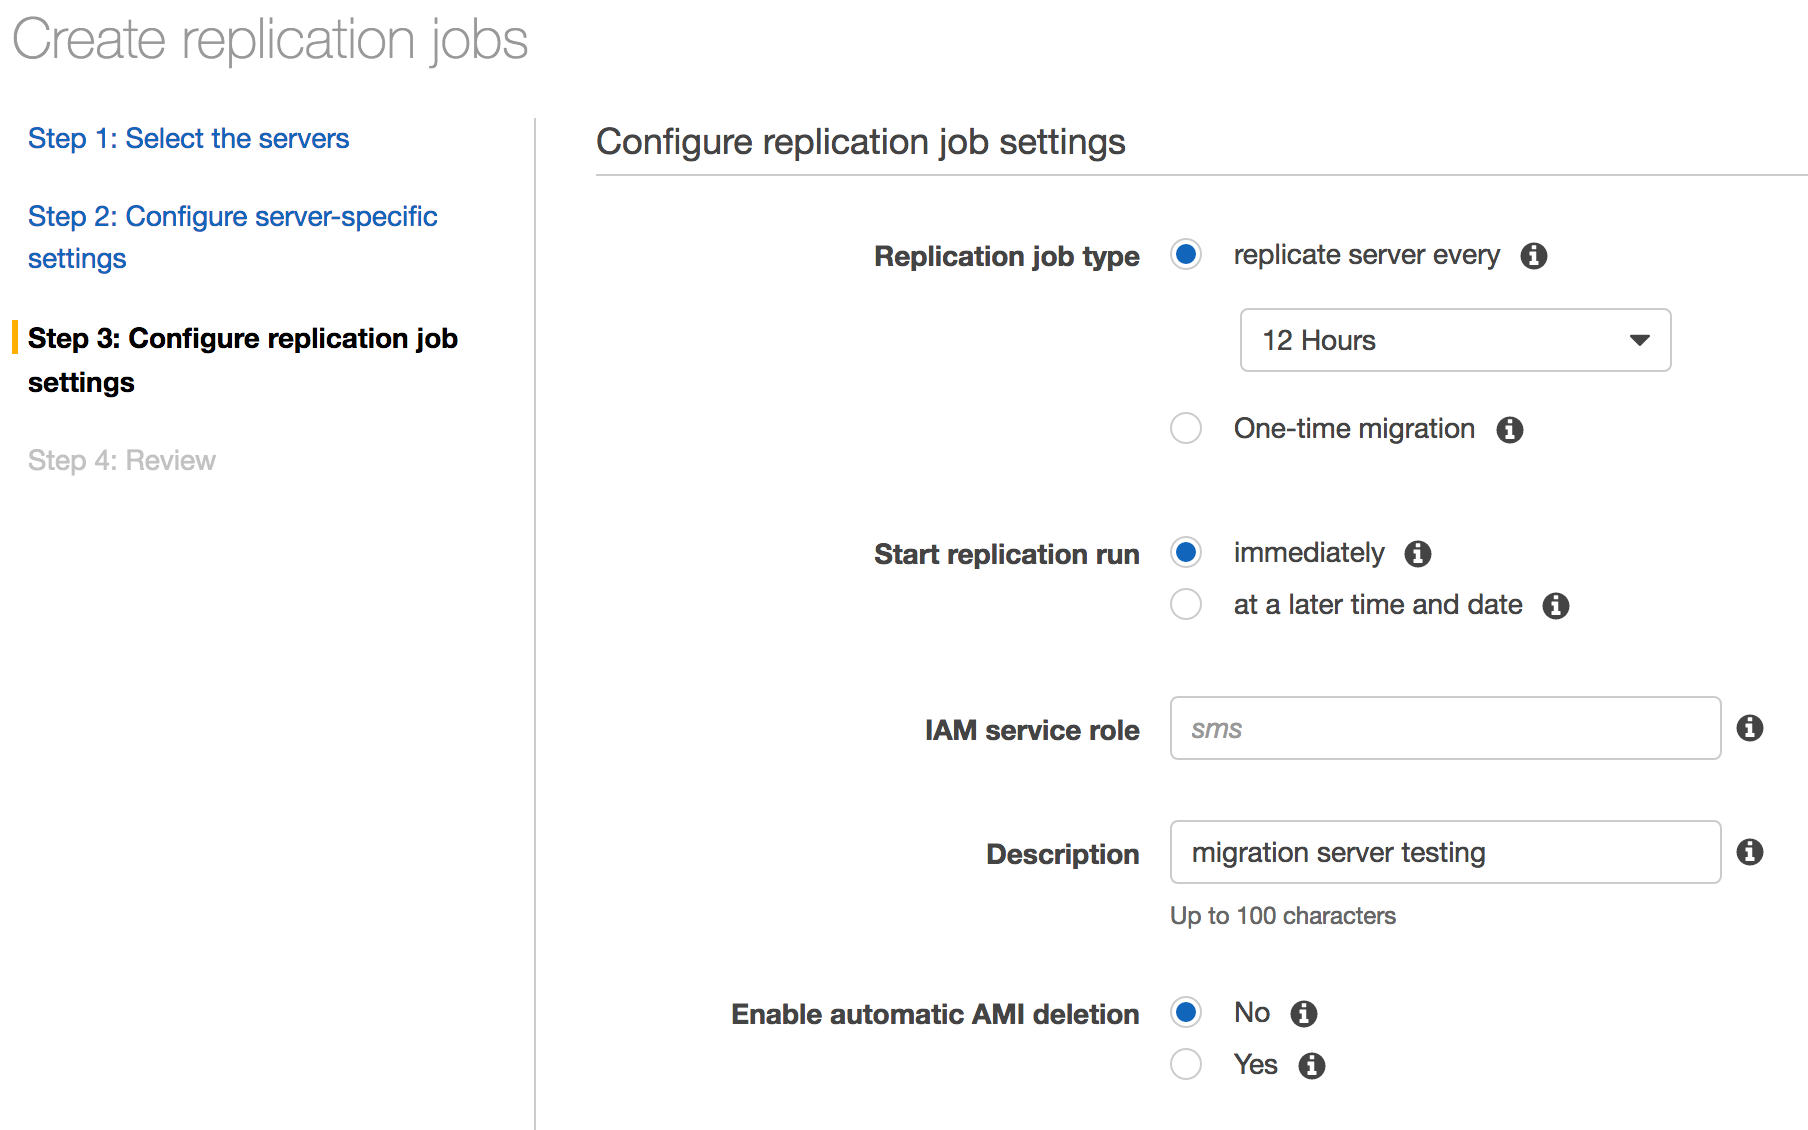 Migrate vsphere vms to amazon with aws server migration service the last option is whether or not to delete the old amis when a new replication run is done xflitez Images